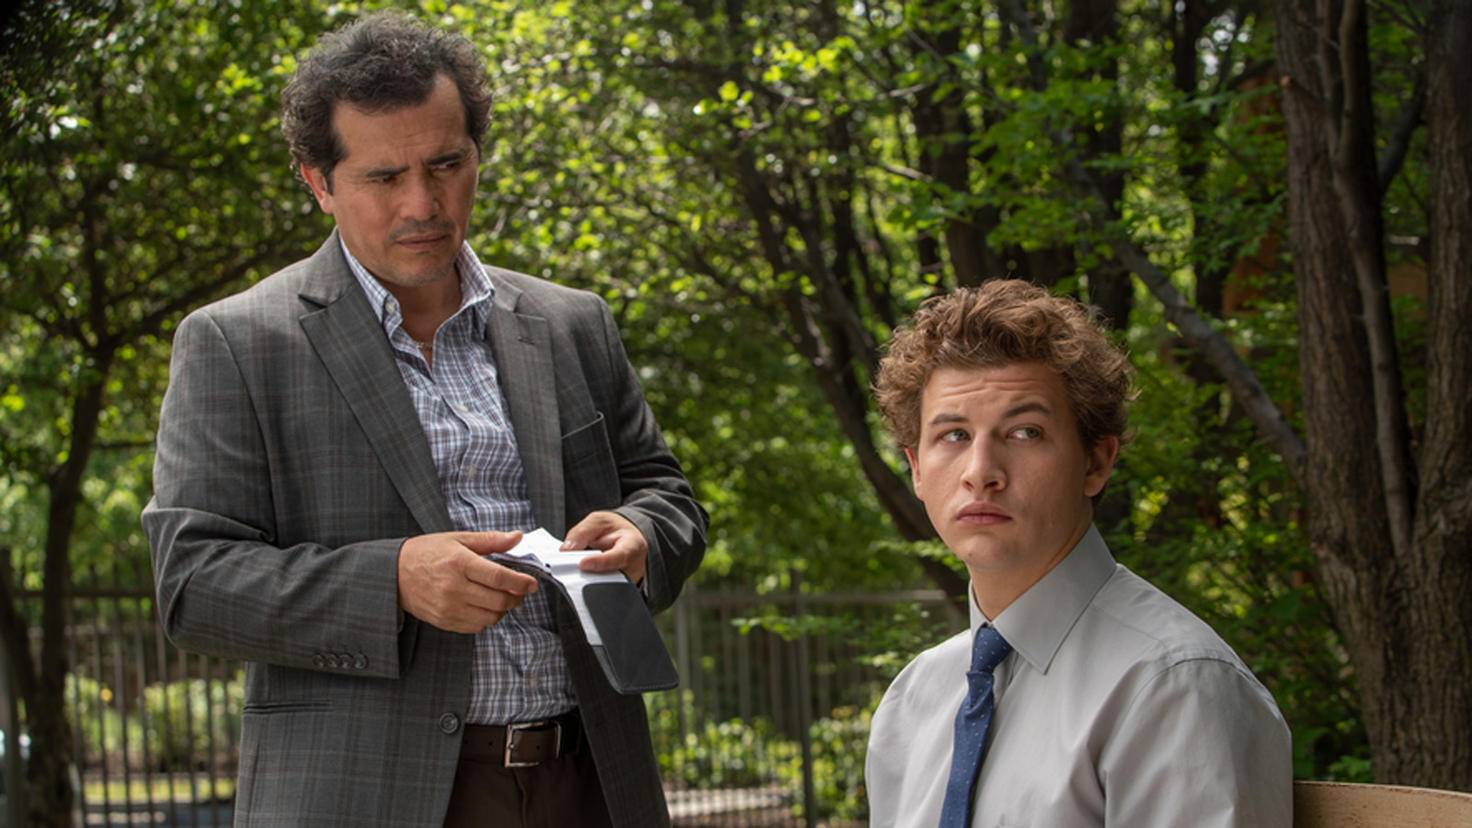 The Night Clerk John Leguizamo und Tye Sheridan